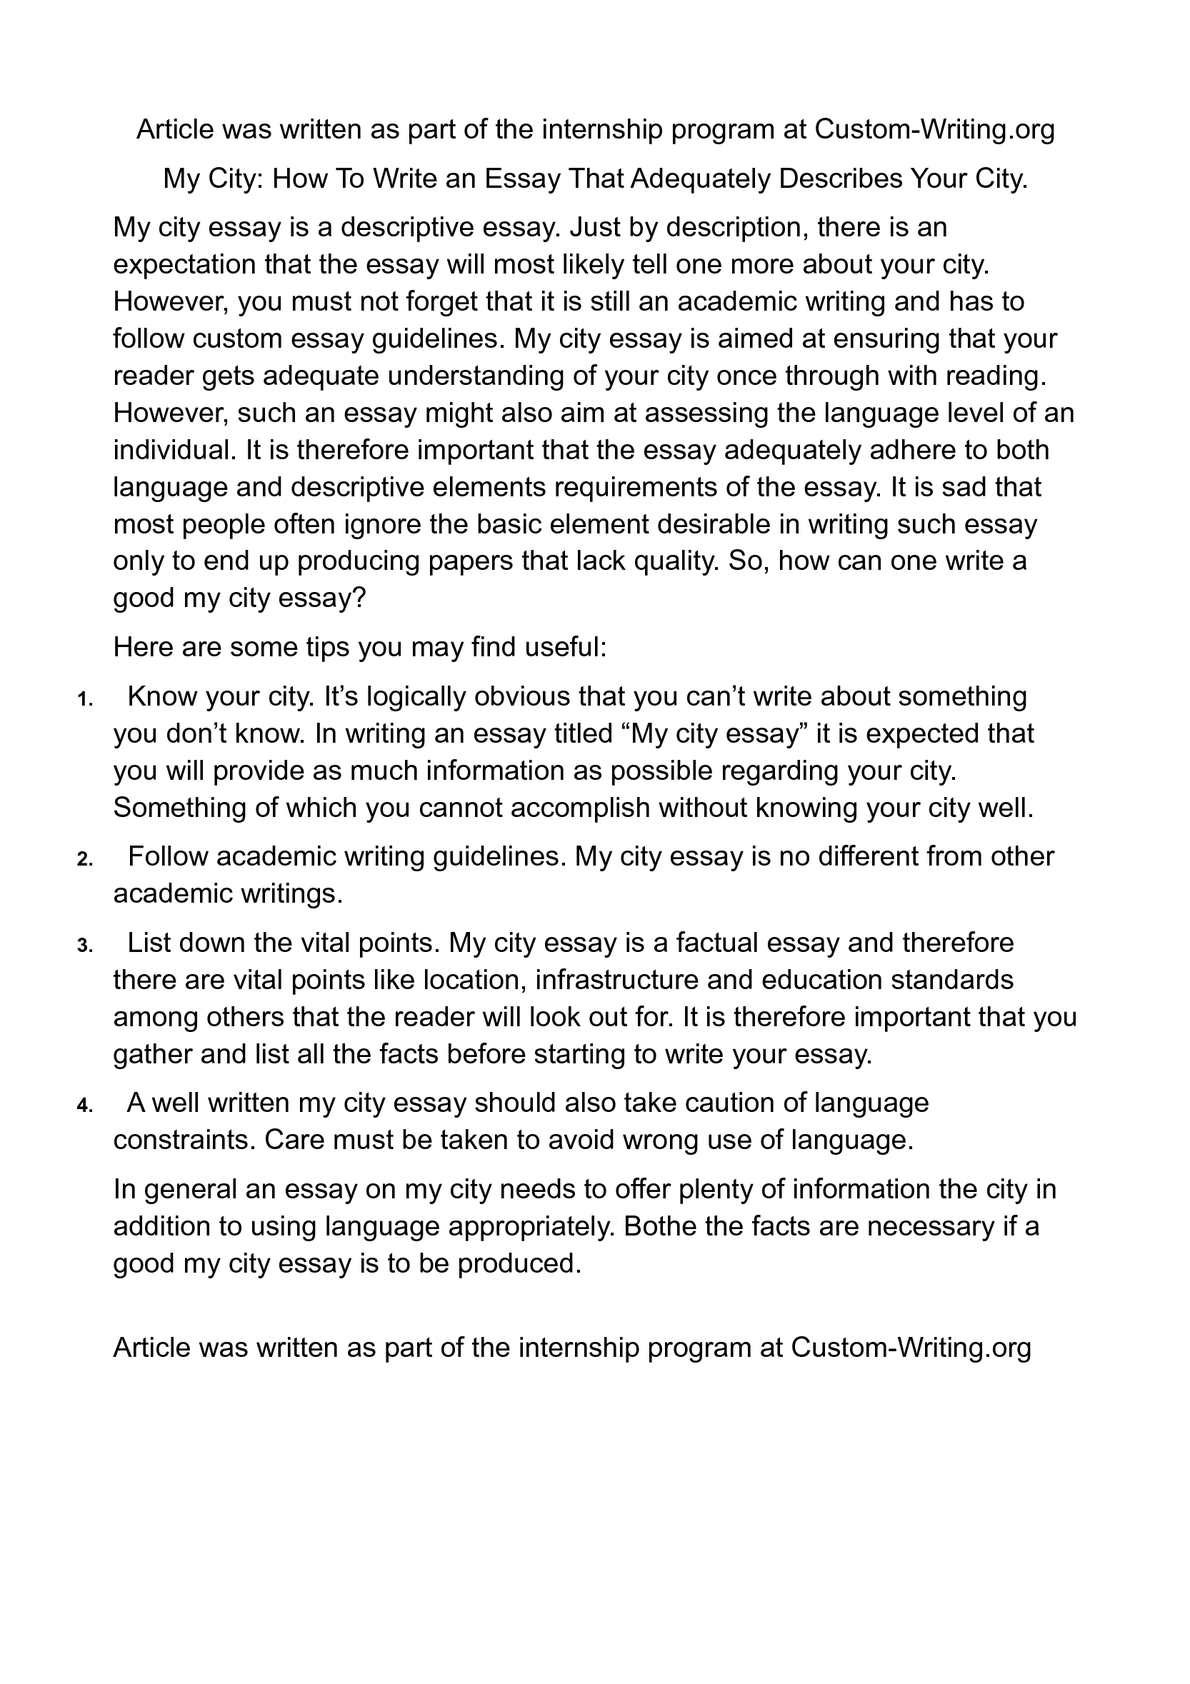 calam atilde copy o my city how to write an essay that adequately describes calamatildecopyo my city how to write an essay that adequately describes your city